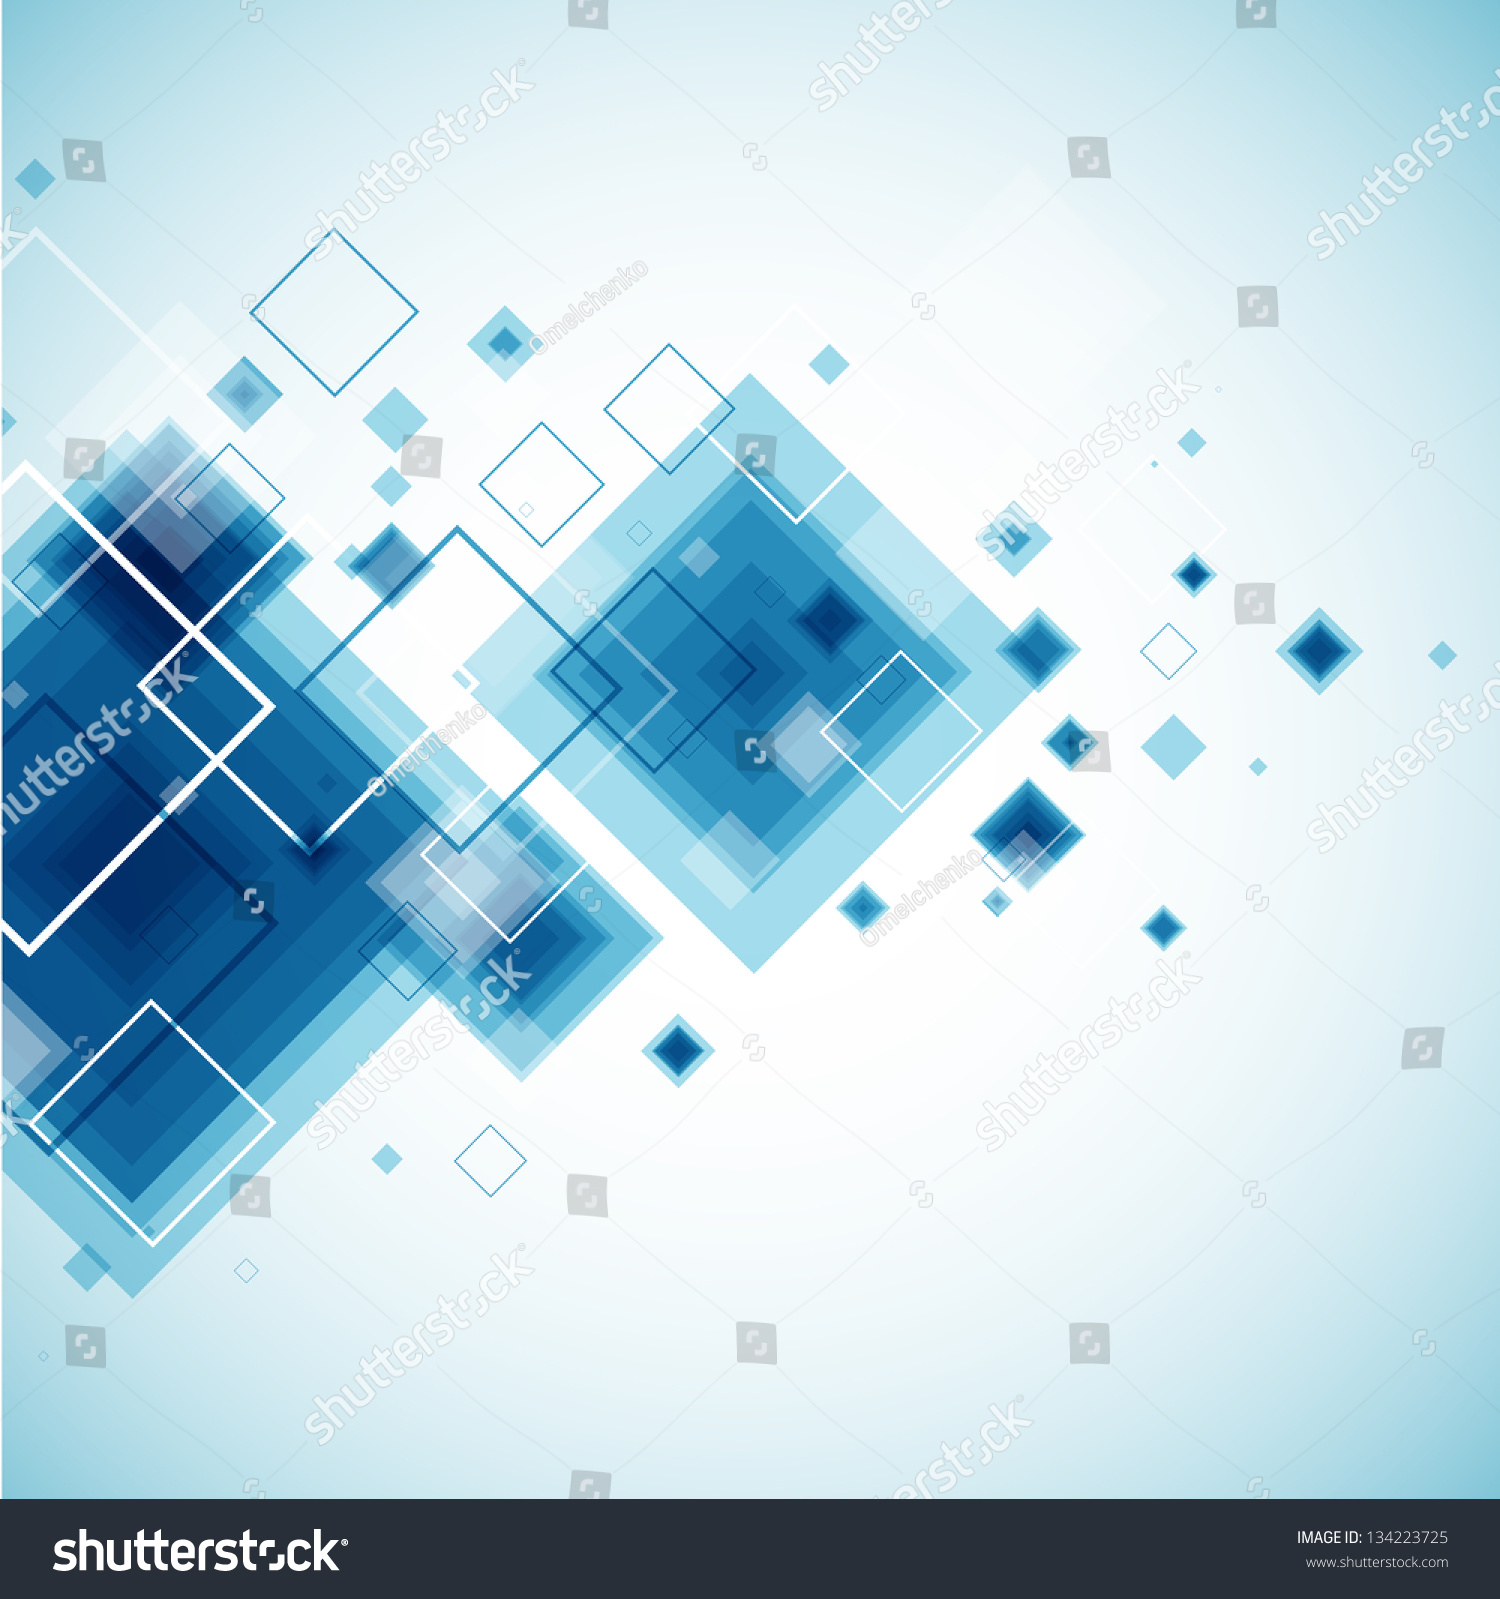 Blue Technology Background. Vector  134223725 : Shutterstock